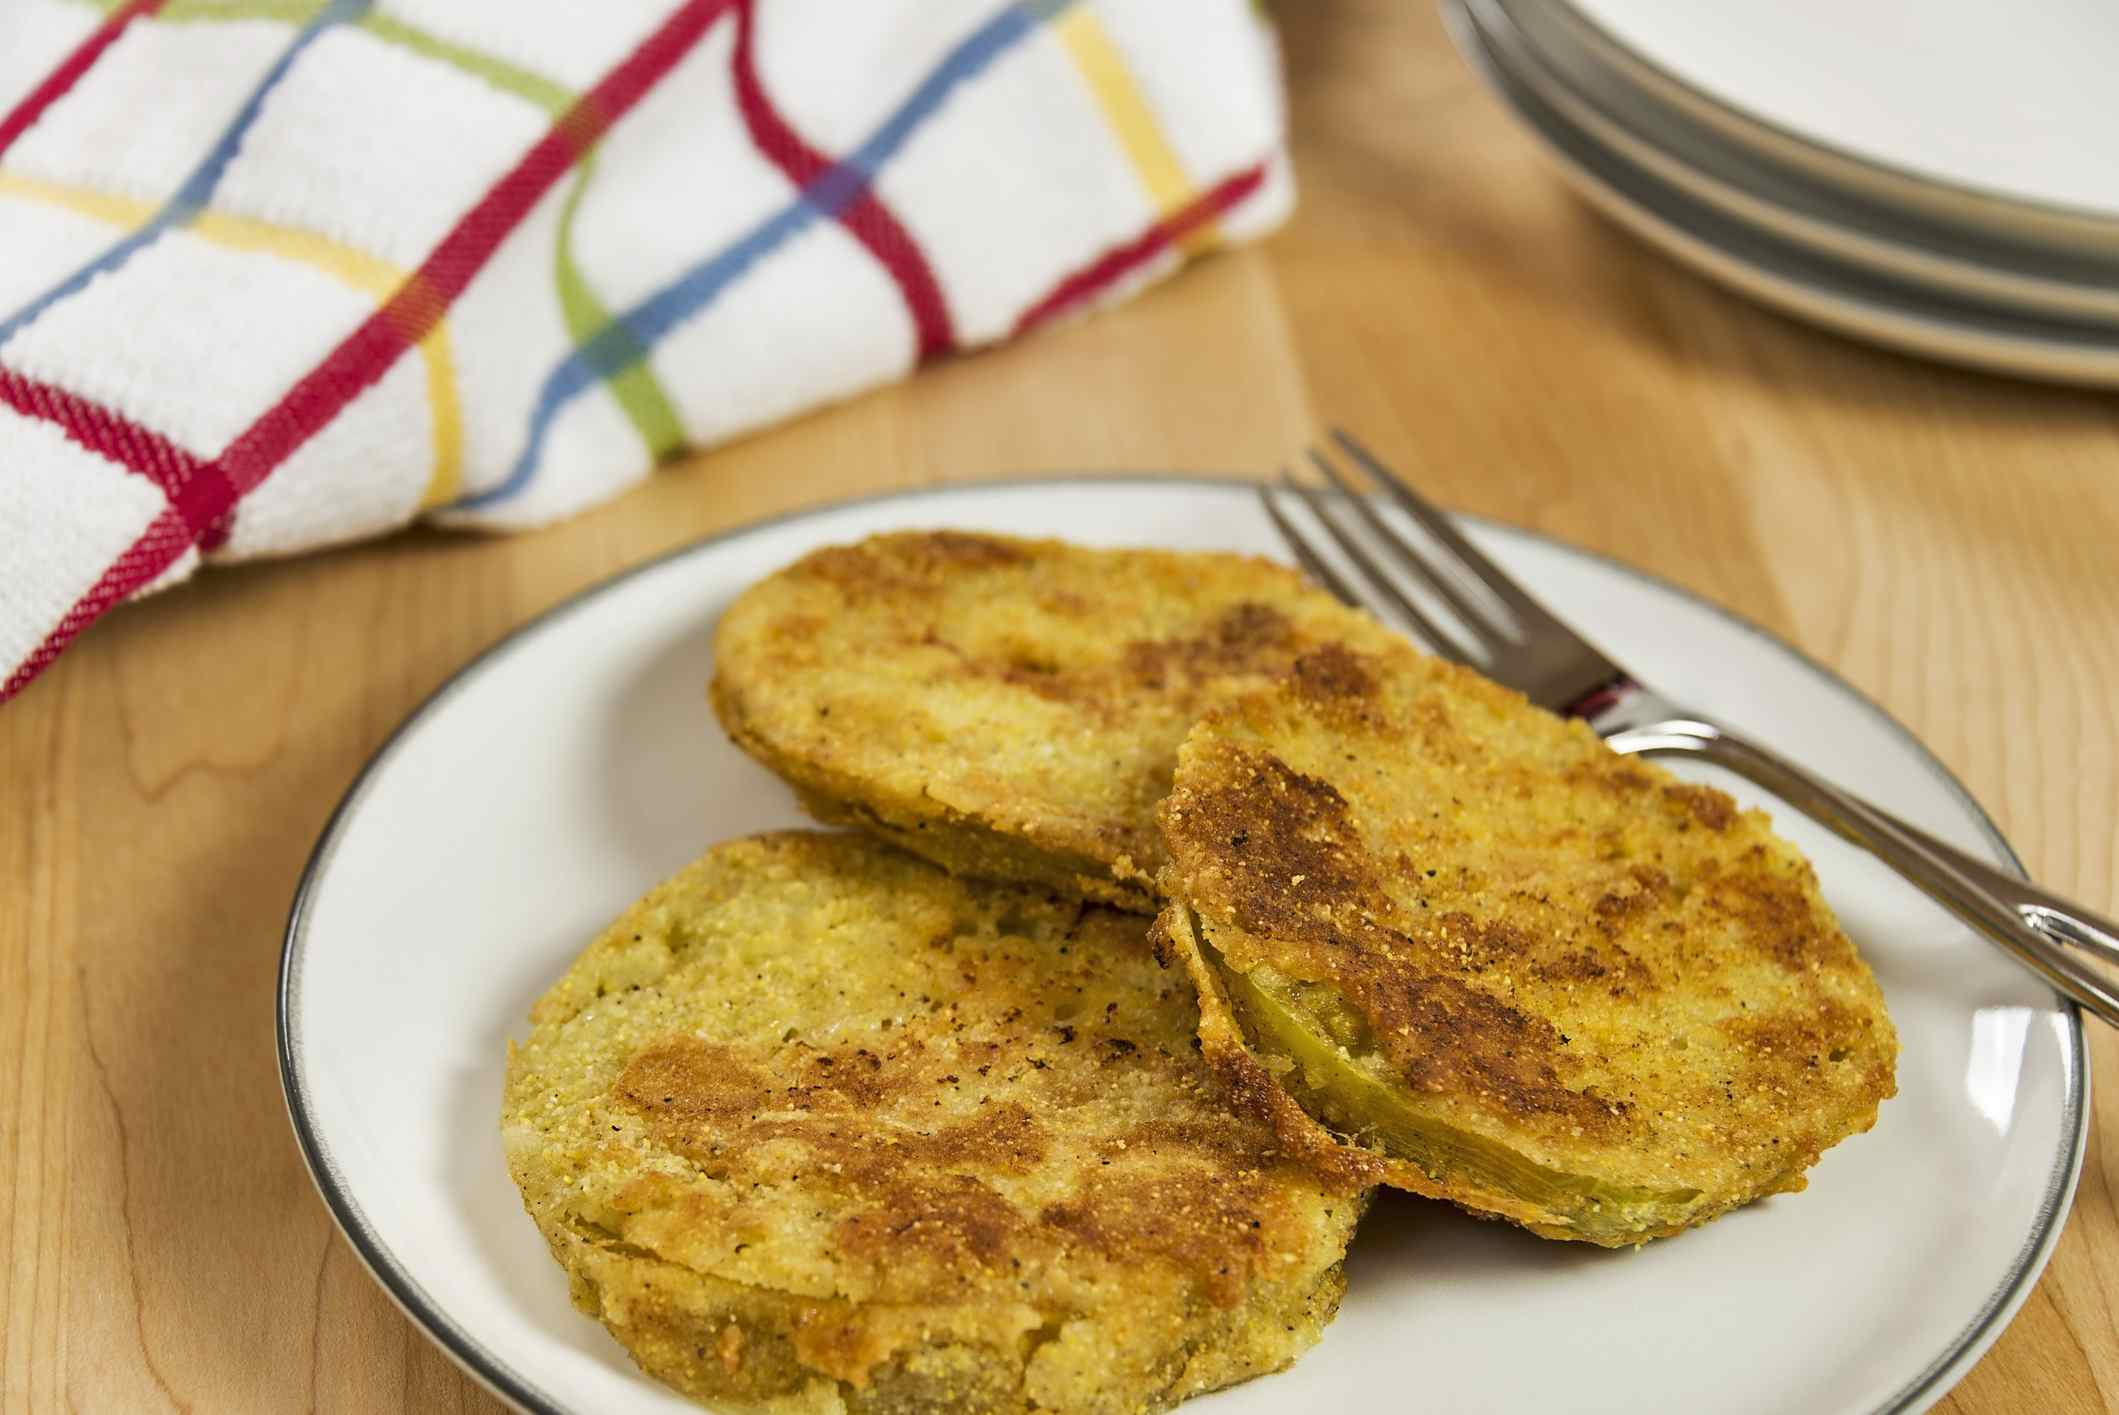 A plate full of delicious fried green tomatoes